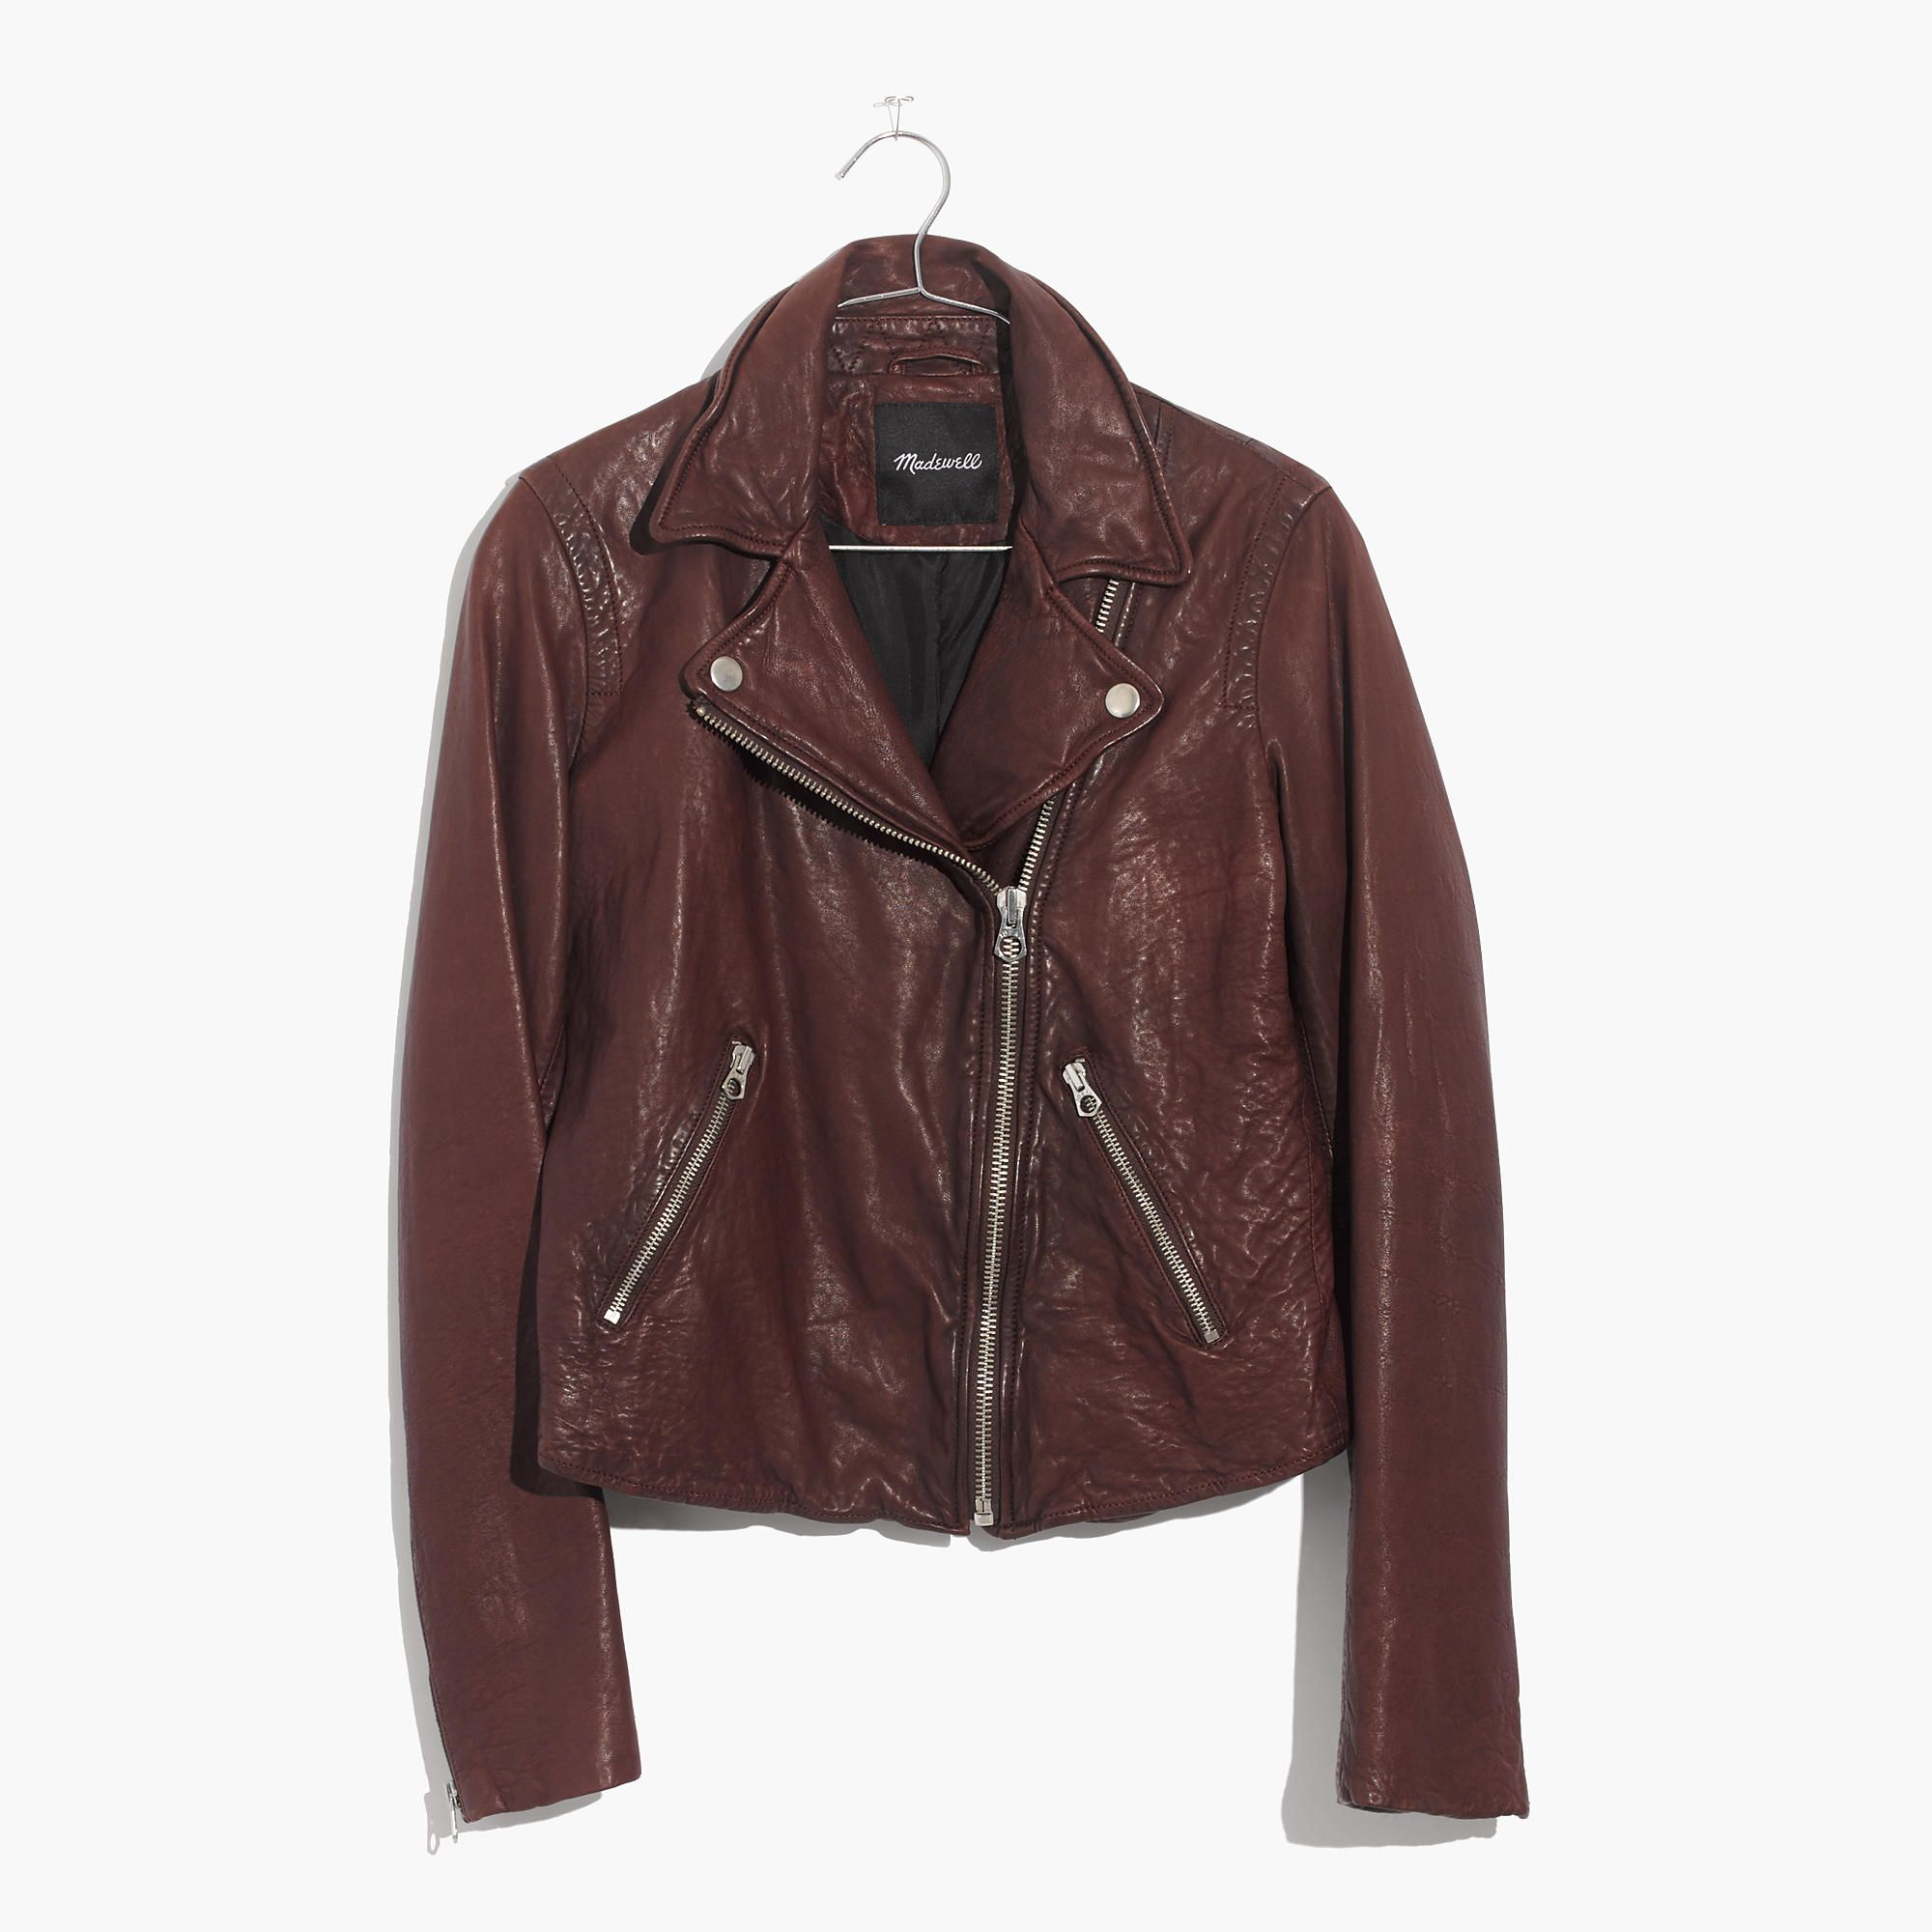 Women S Washed Leather Motorcycle Jacket Brown Leather Motorcycle Jacket Dark Brown Leather Jacket Motorcycle Jacket Women [ 2000 x 2000 Pixel ]